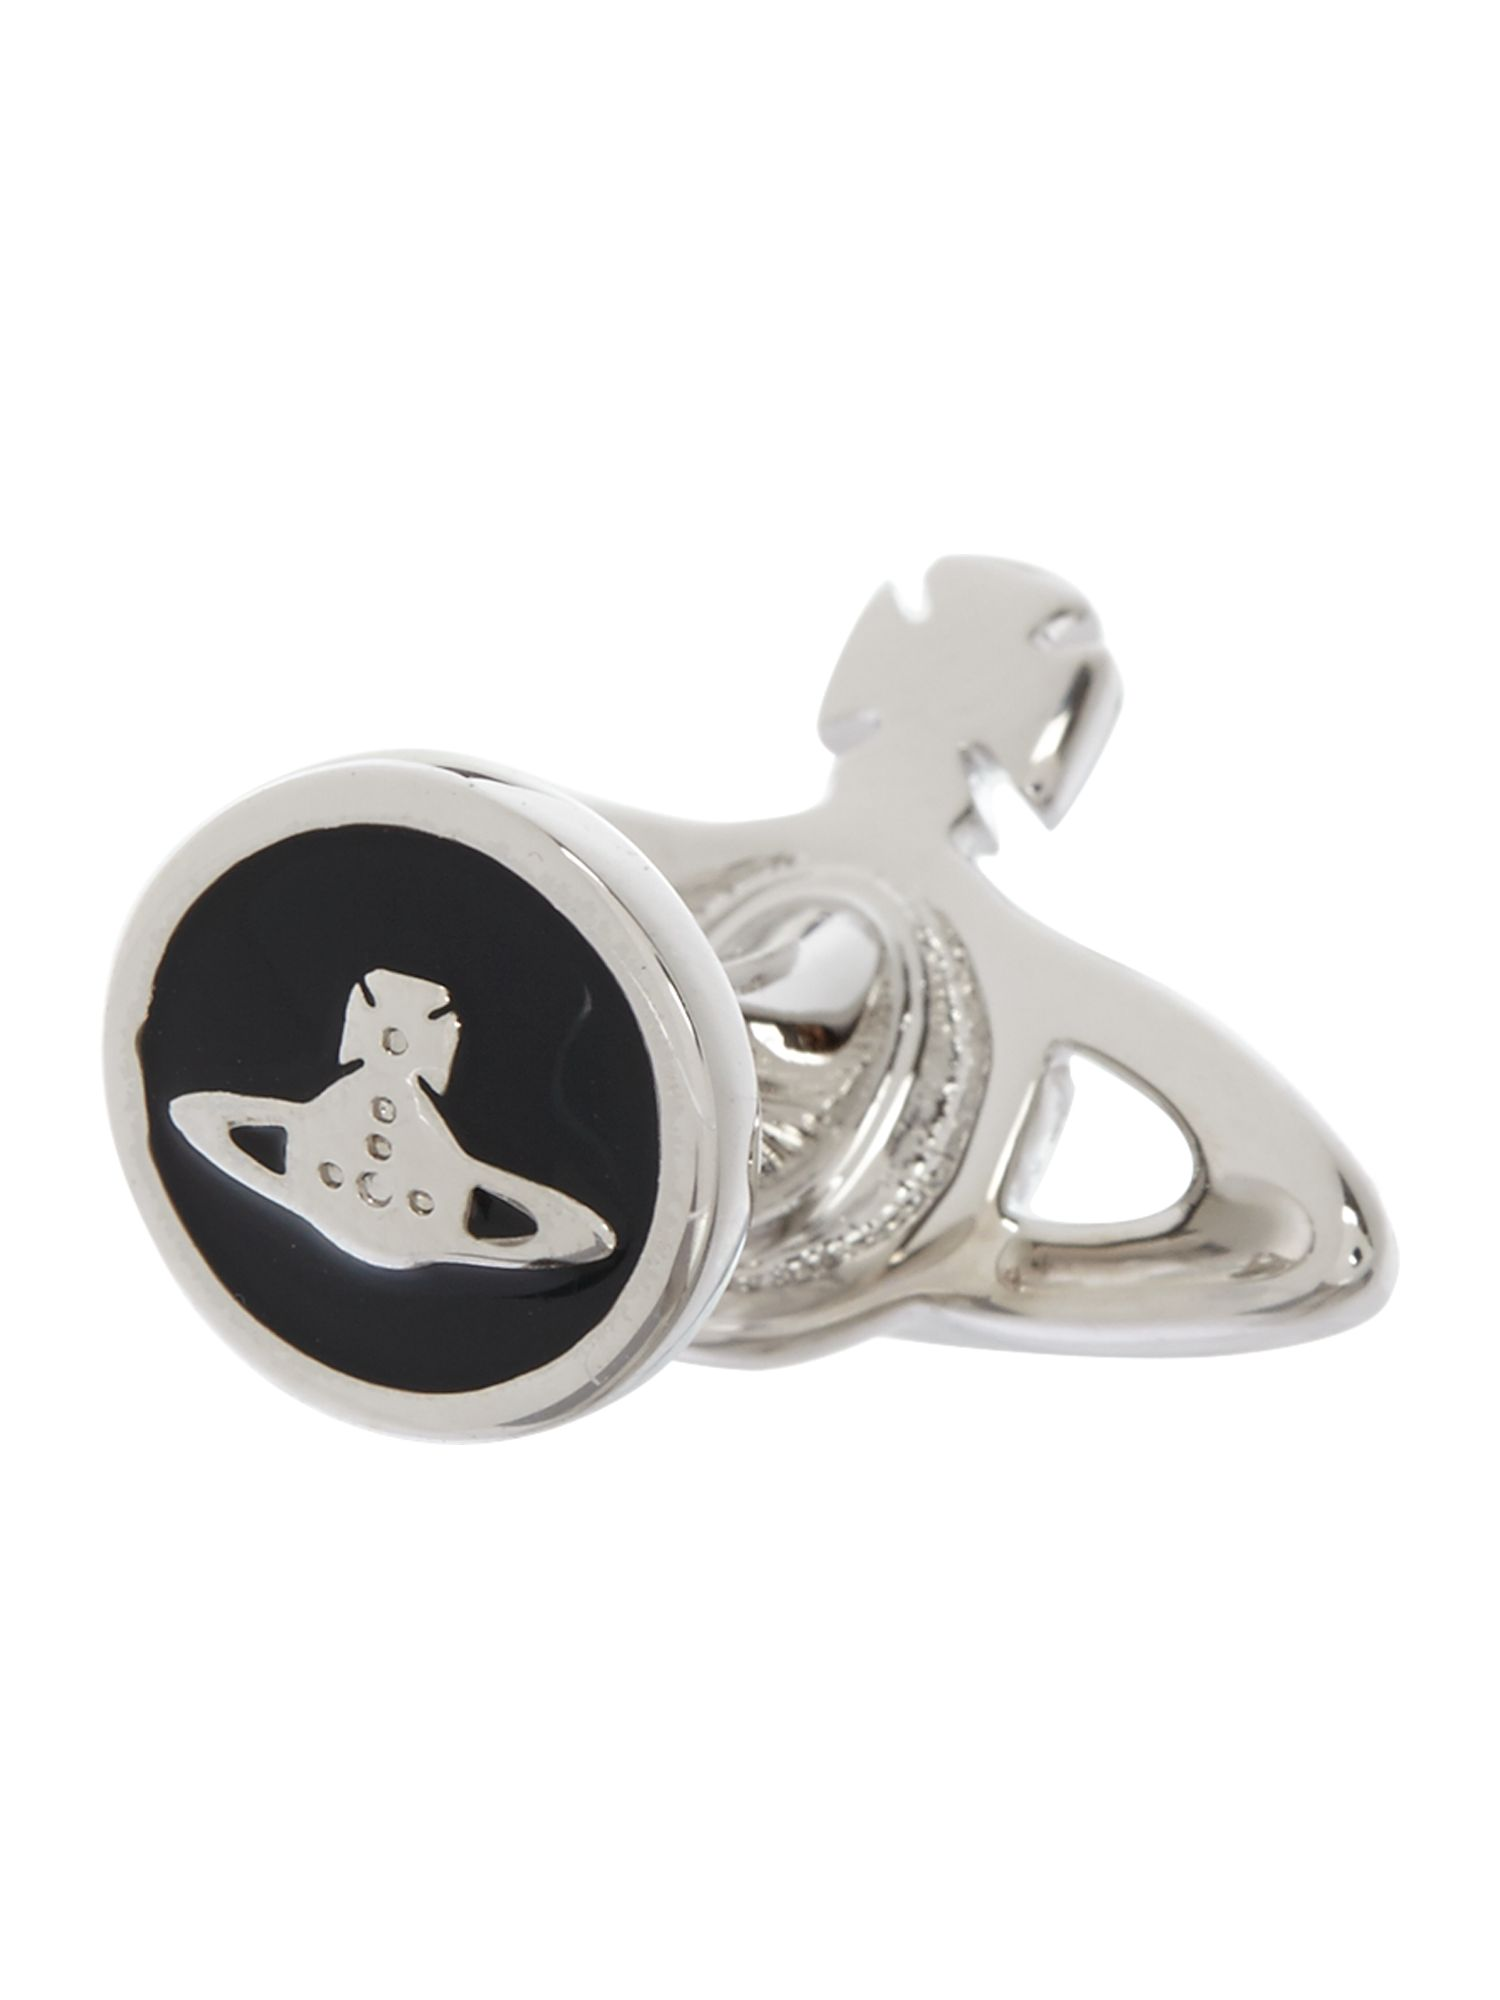 Mini bas relief cufflinks